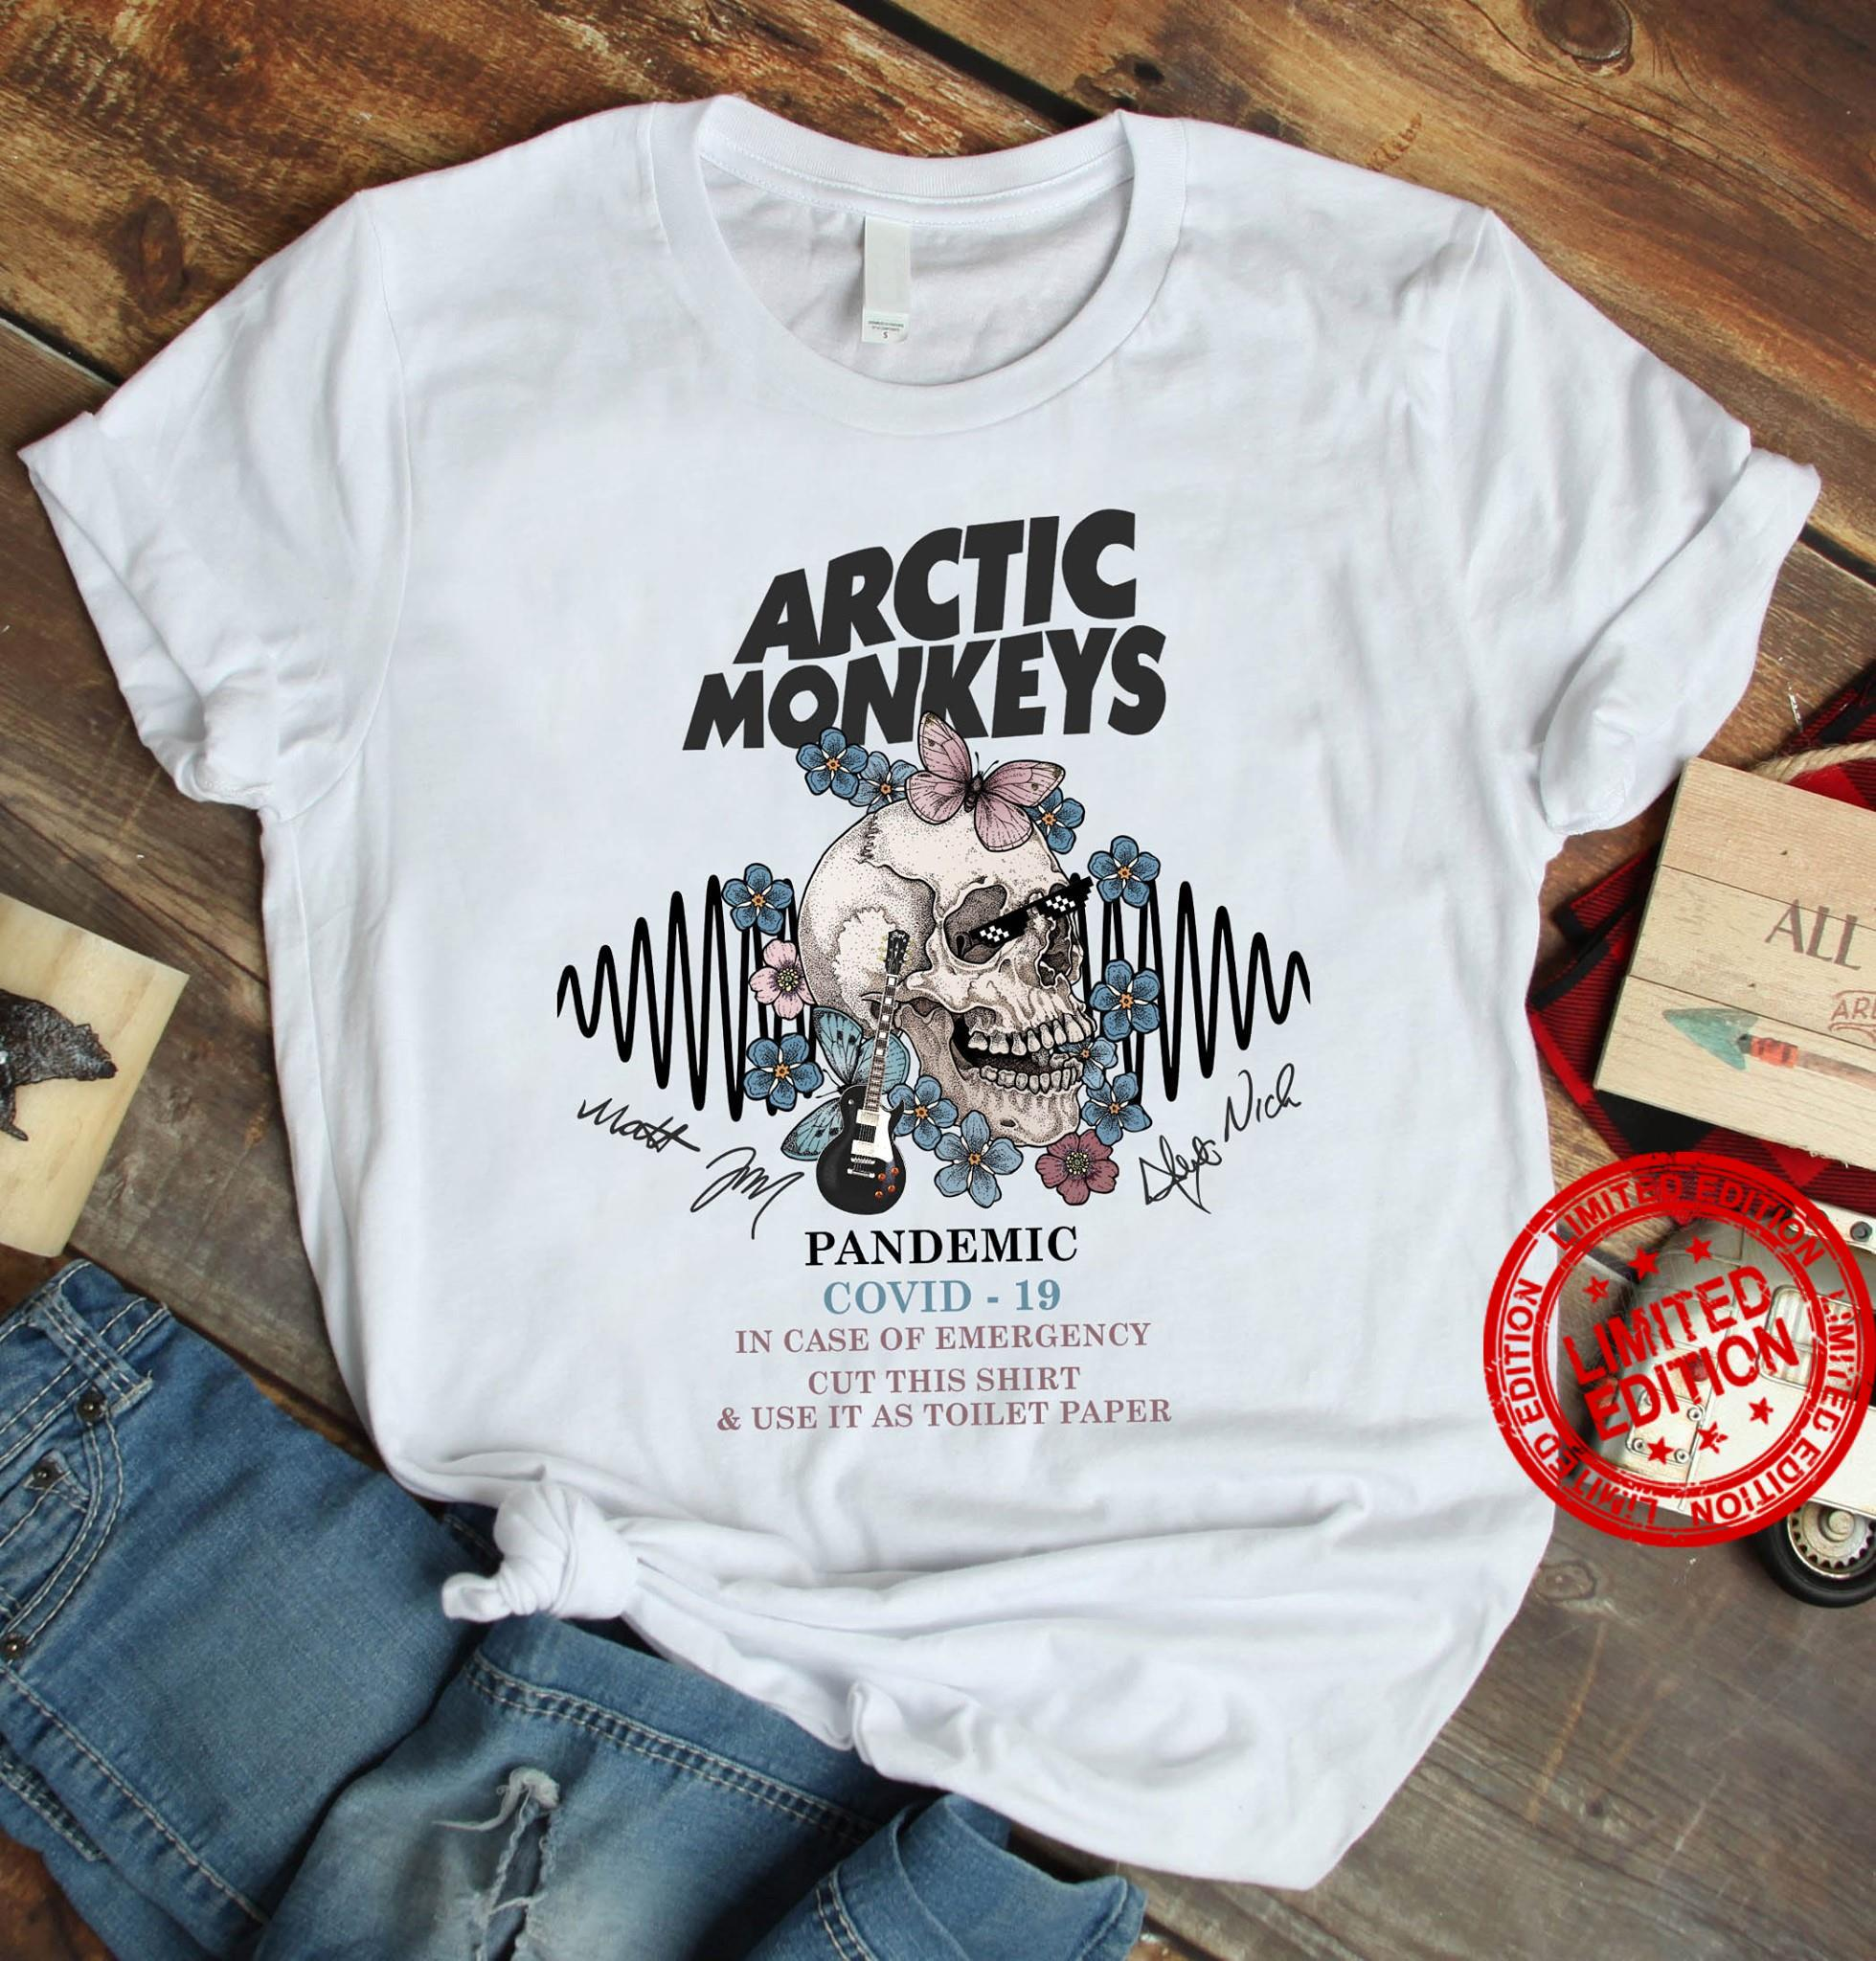 Arctic Monkeys Pandemic Covid 19 Shirt